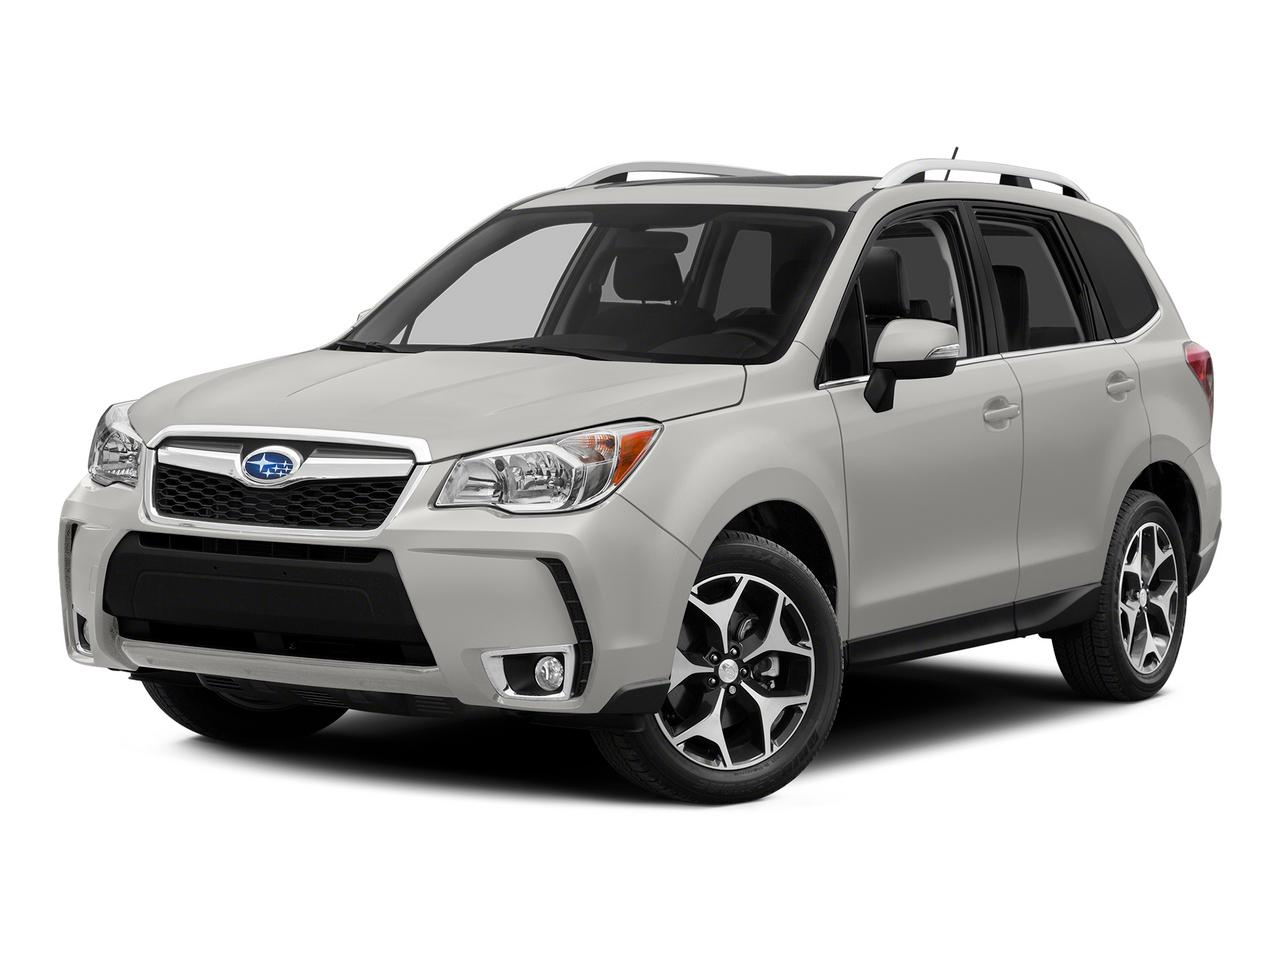 2015 Subaru Forester Vehicle Photo in Akron, OH 44312